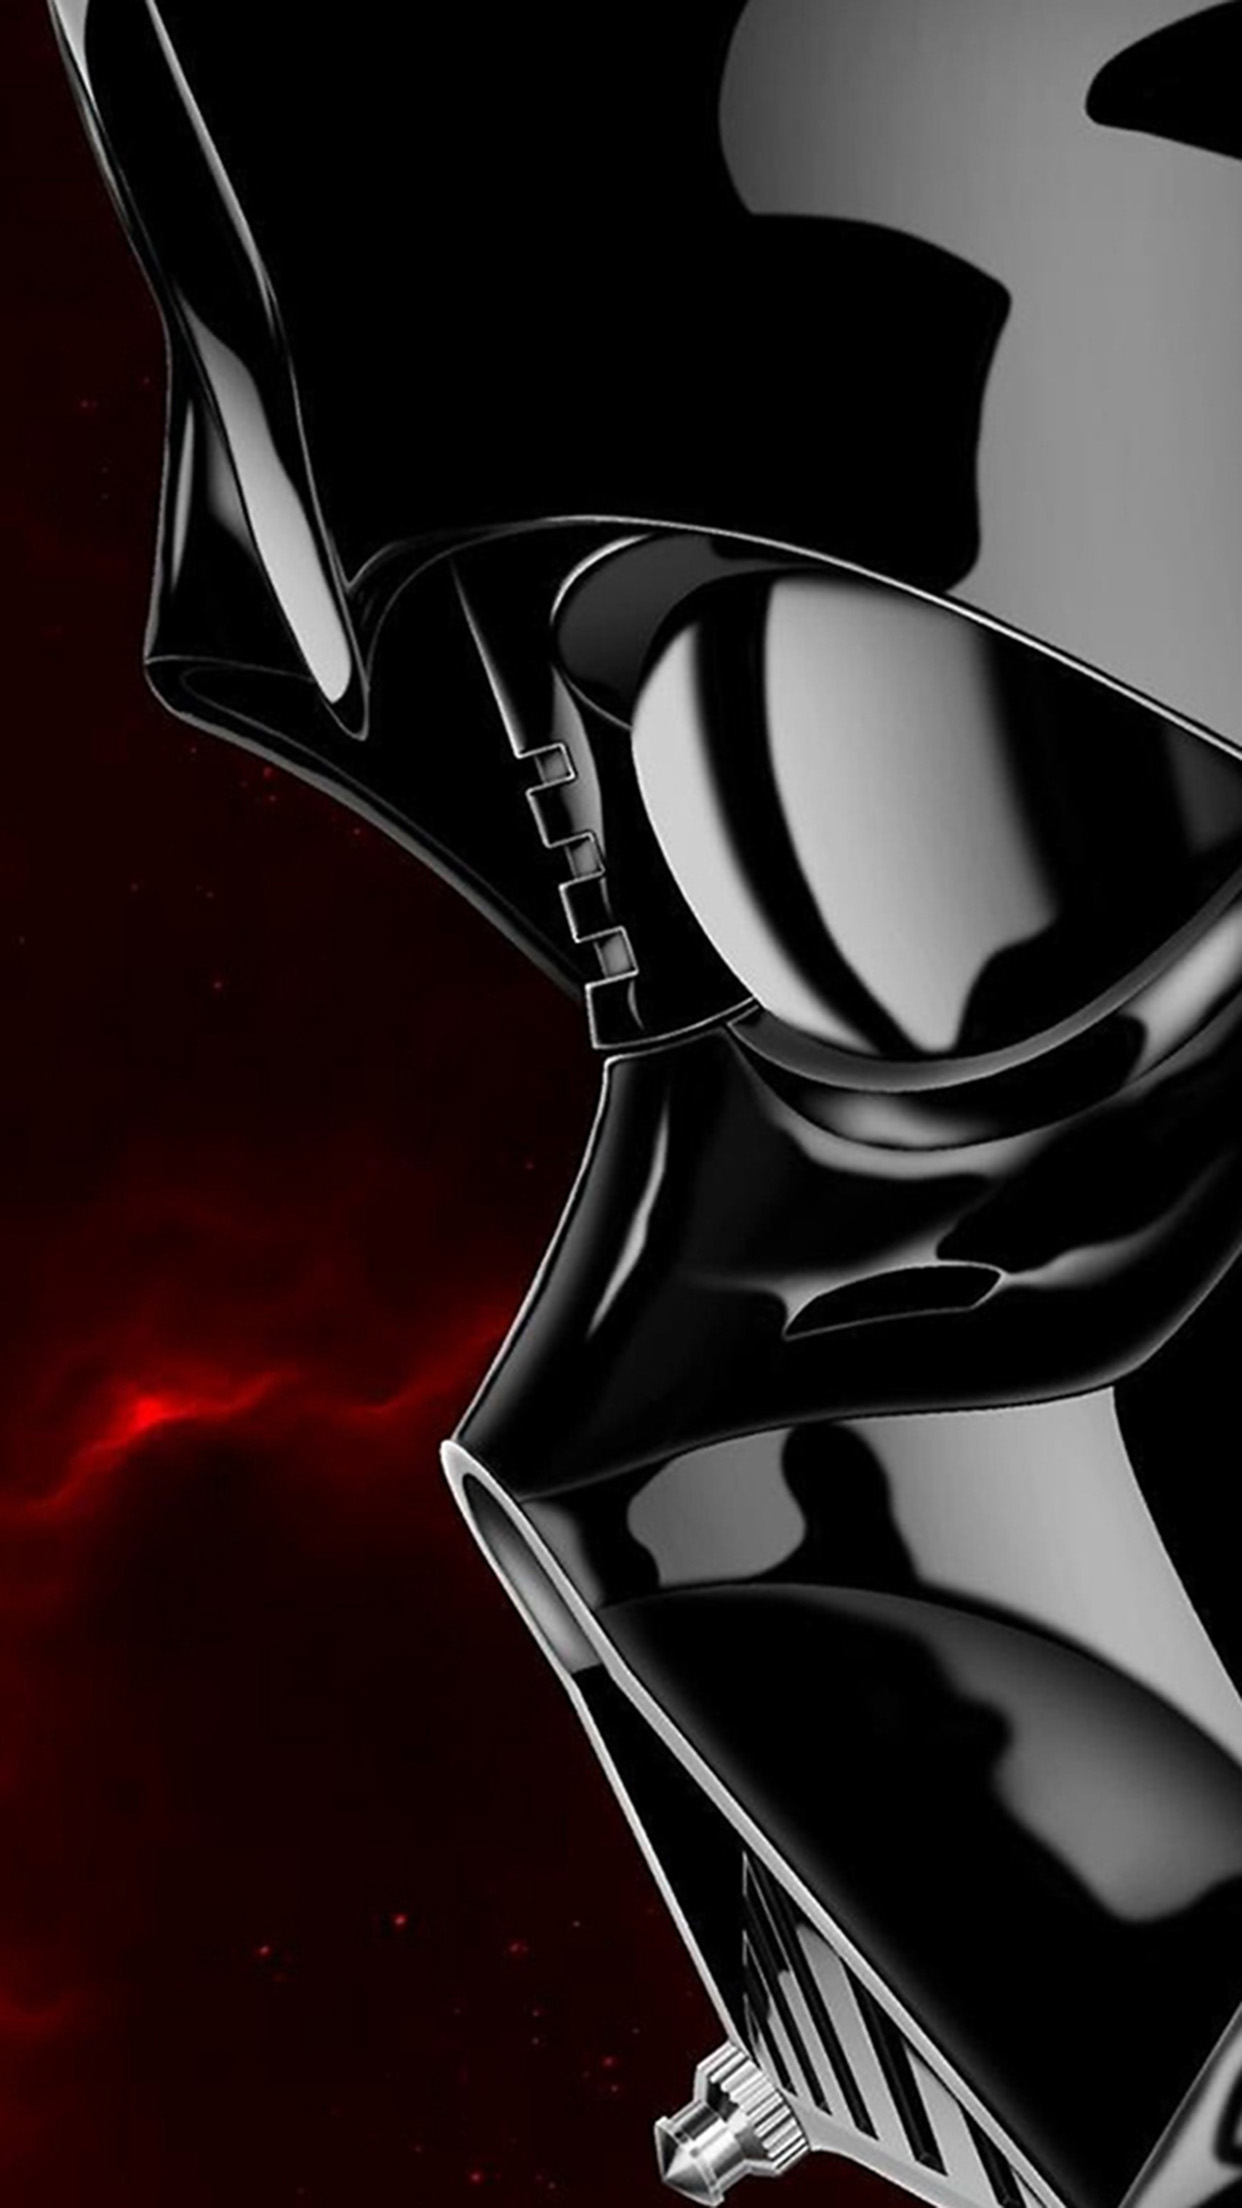 Star Wars Darth Vader Wallpaper for iPhone X 8 7 6 1242x2208